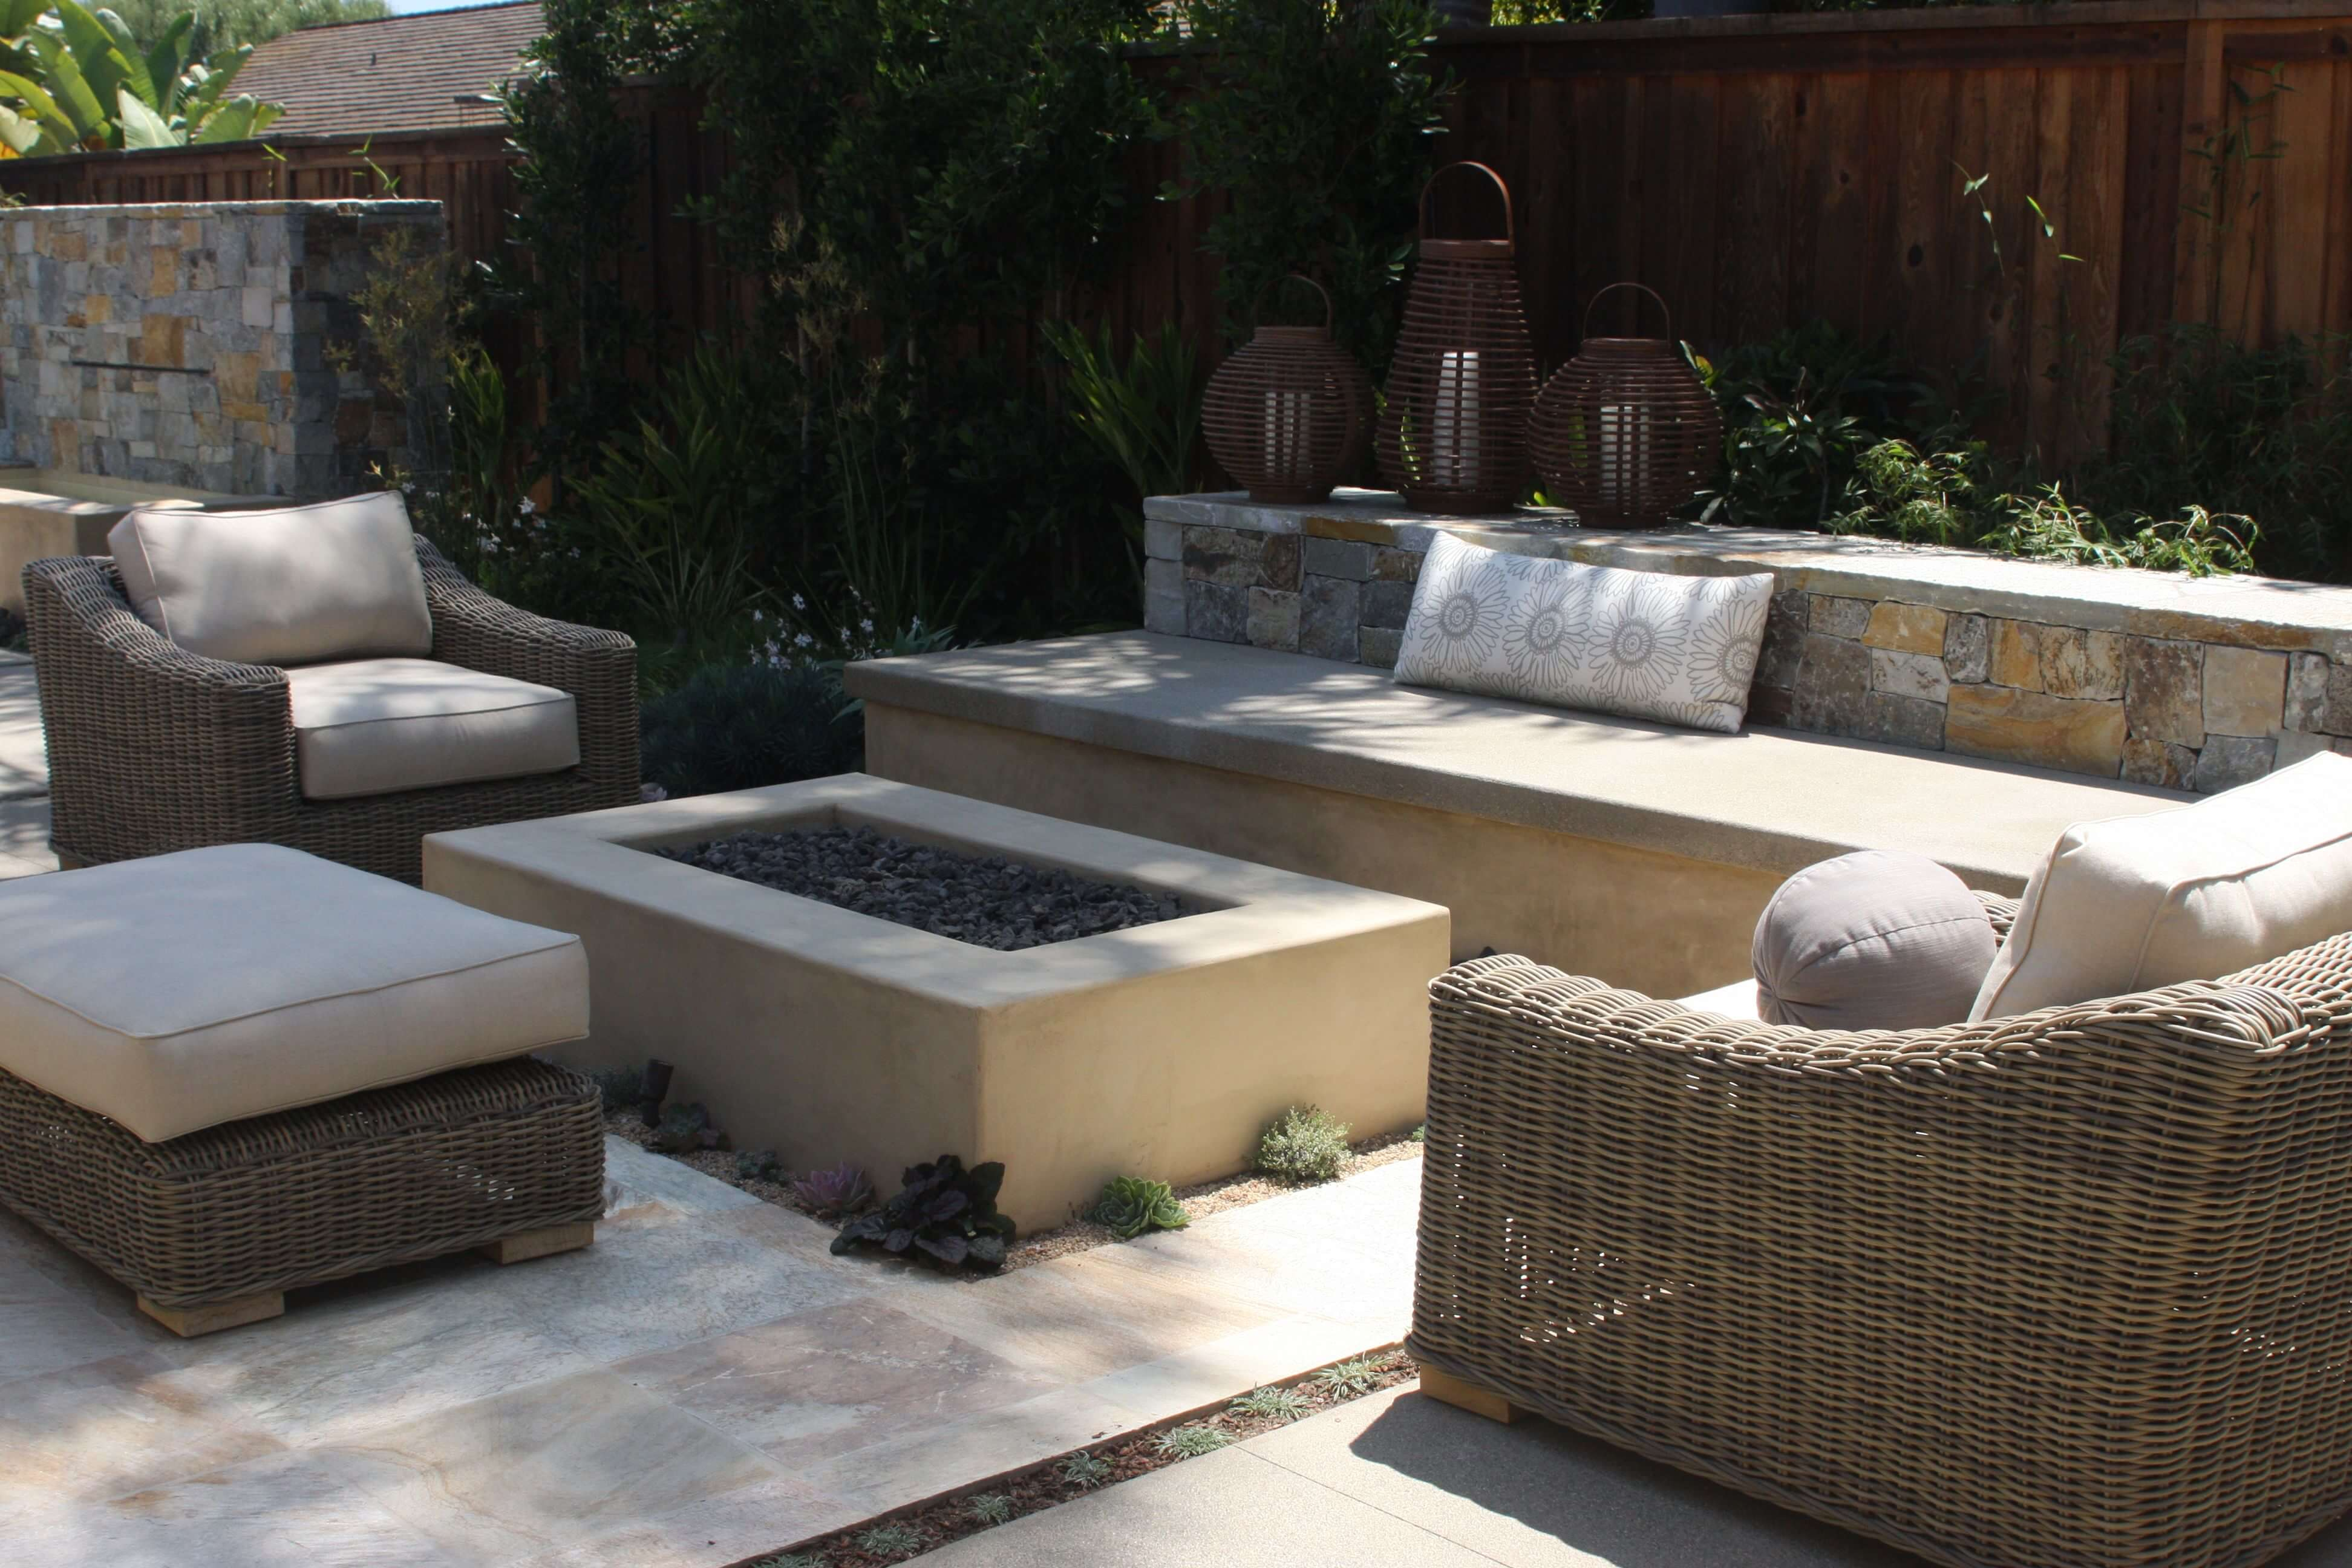 Last but not least, hardscape furniture is always viable